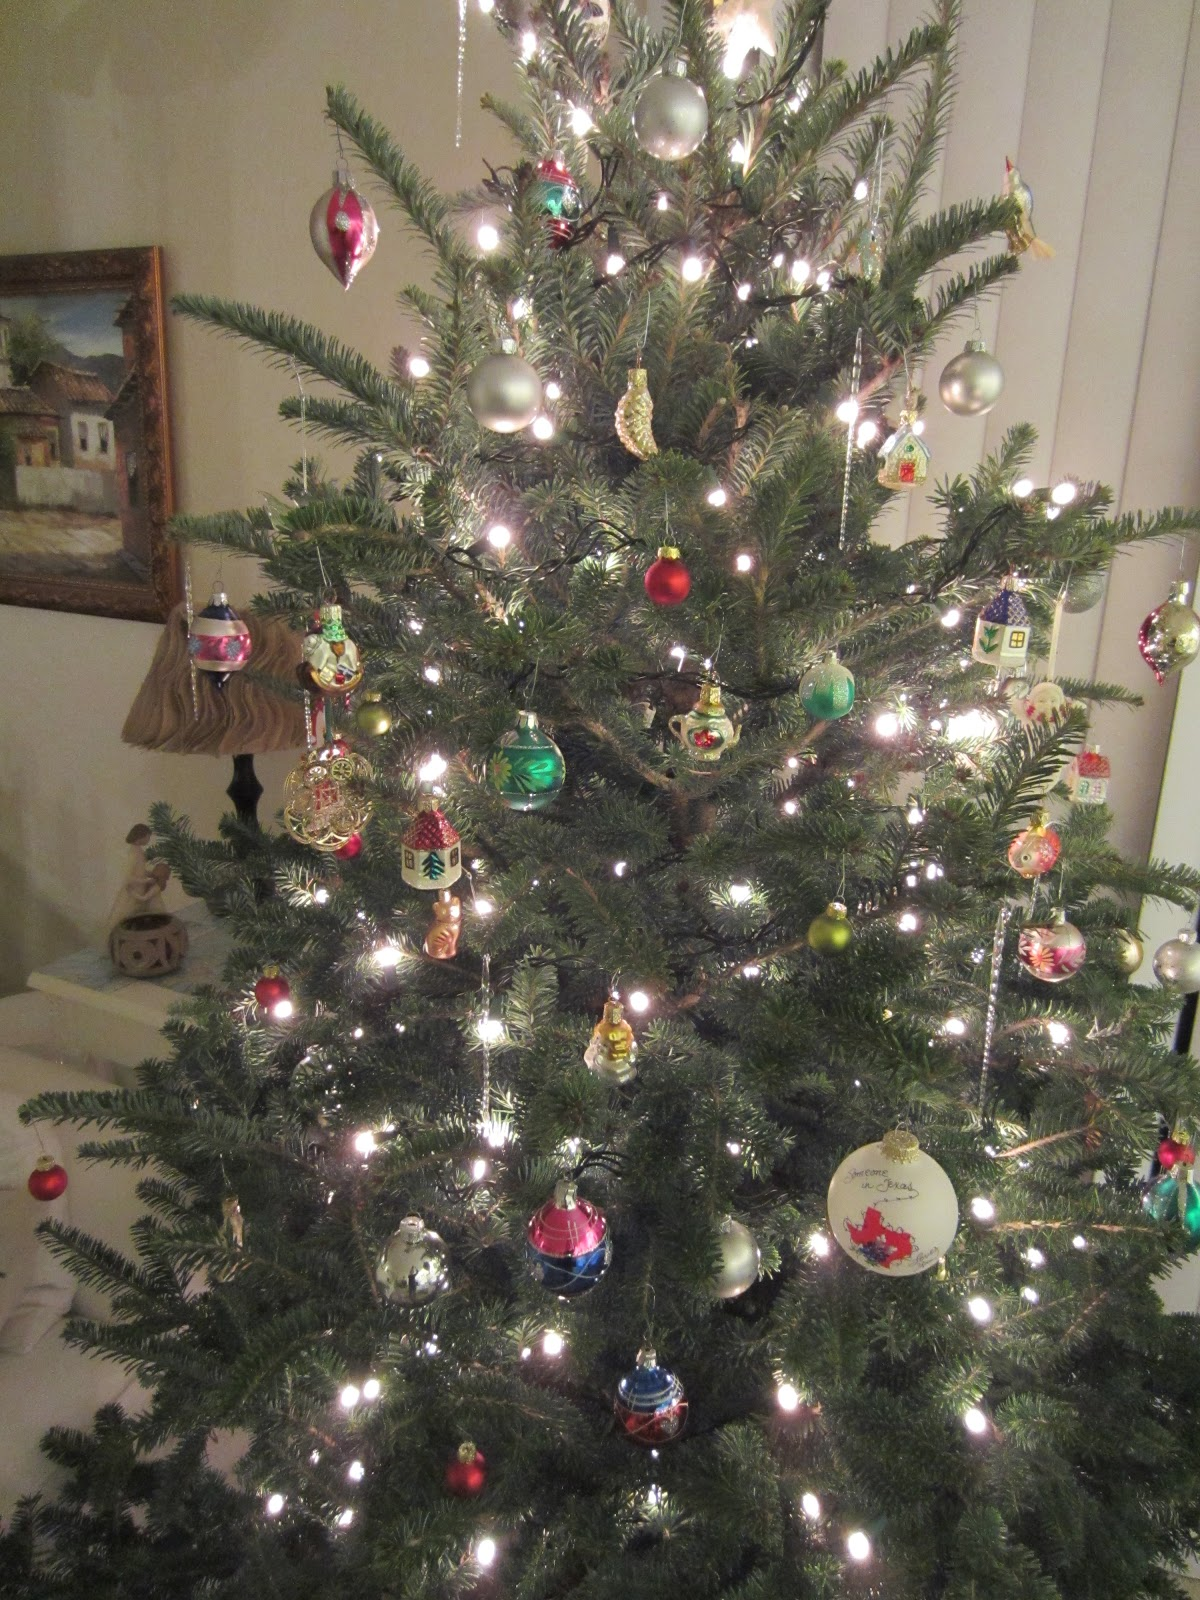 I Think It S About Time To Show You Our Comically Uneven Christmas Tree No Don T Mean That Tipping Over Or Anything Like